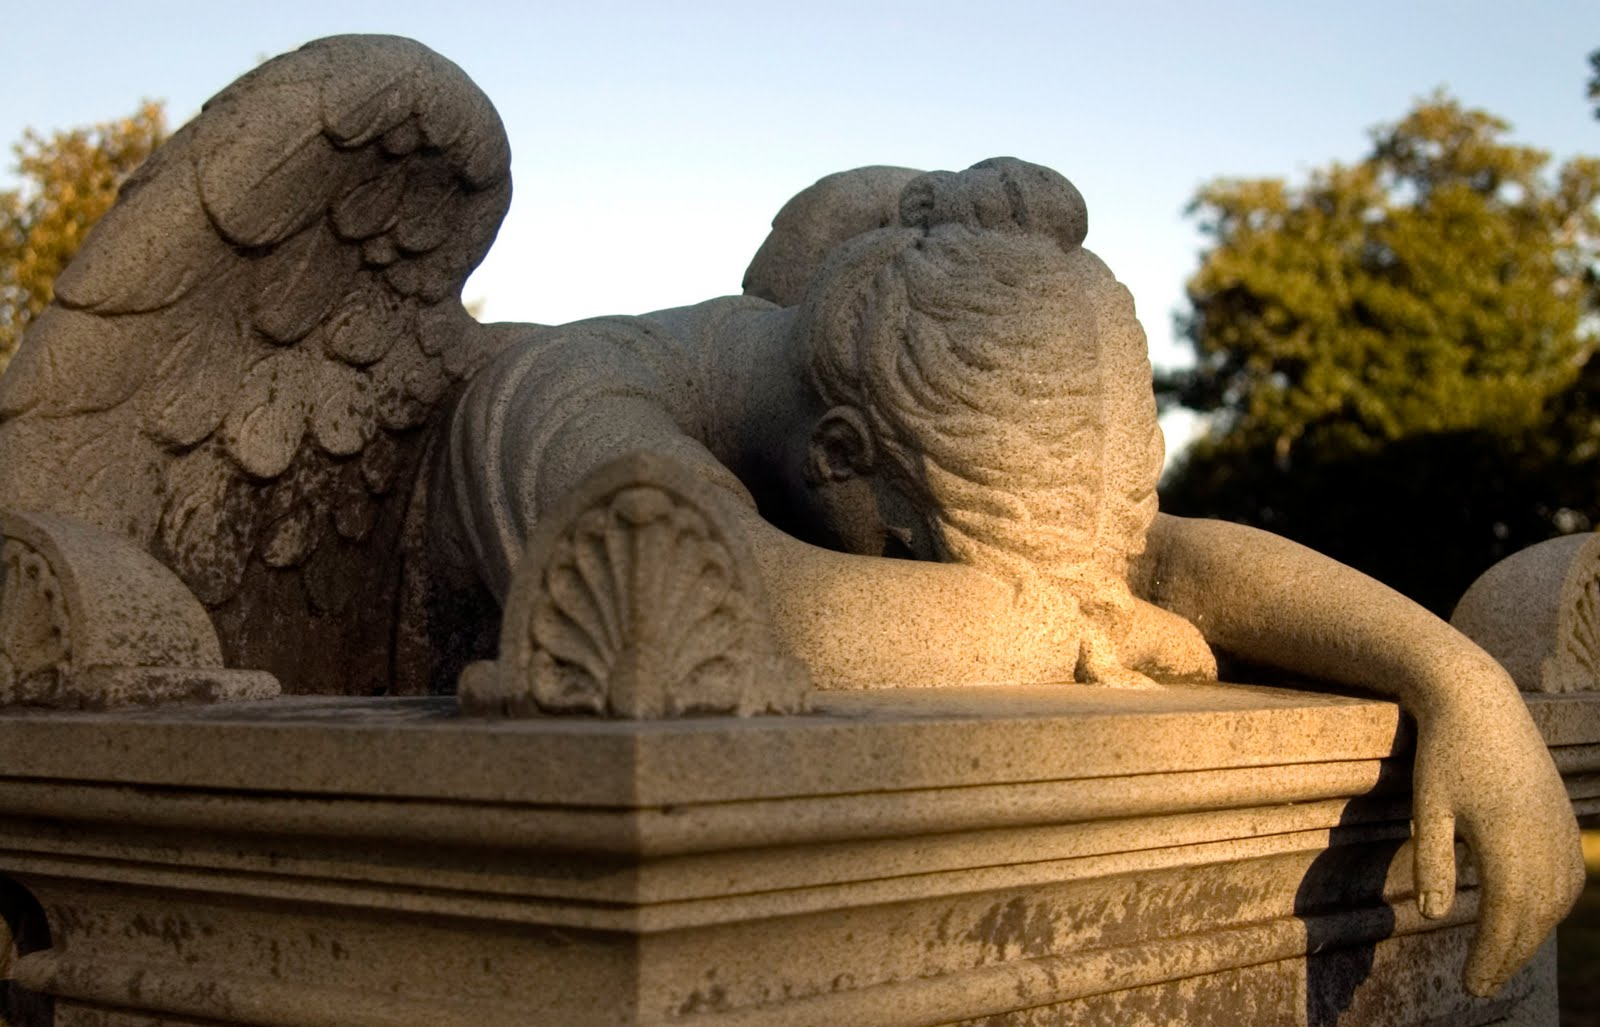 http://1.bp.blogspot.com/-0Ep8-rmLT8E/TeLBZBEcnKI/AAAAAAAACqQ/rWu5oFAJwOY/s1600/Weeping-Angel-at-Friendship-Cemetery-in-Columbus-MS_mr.jpg